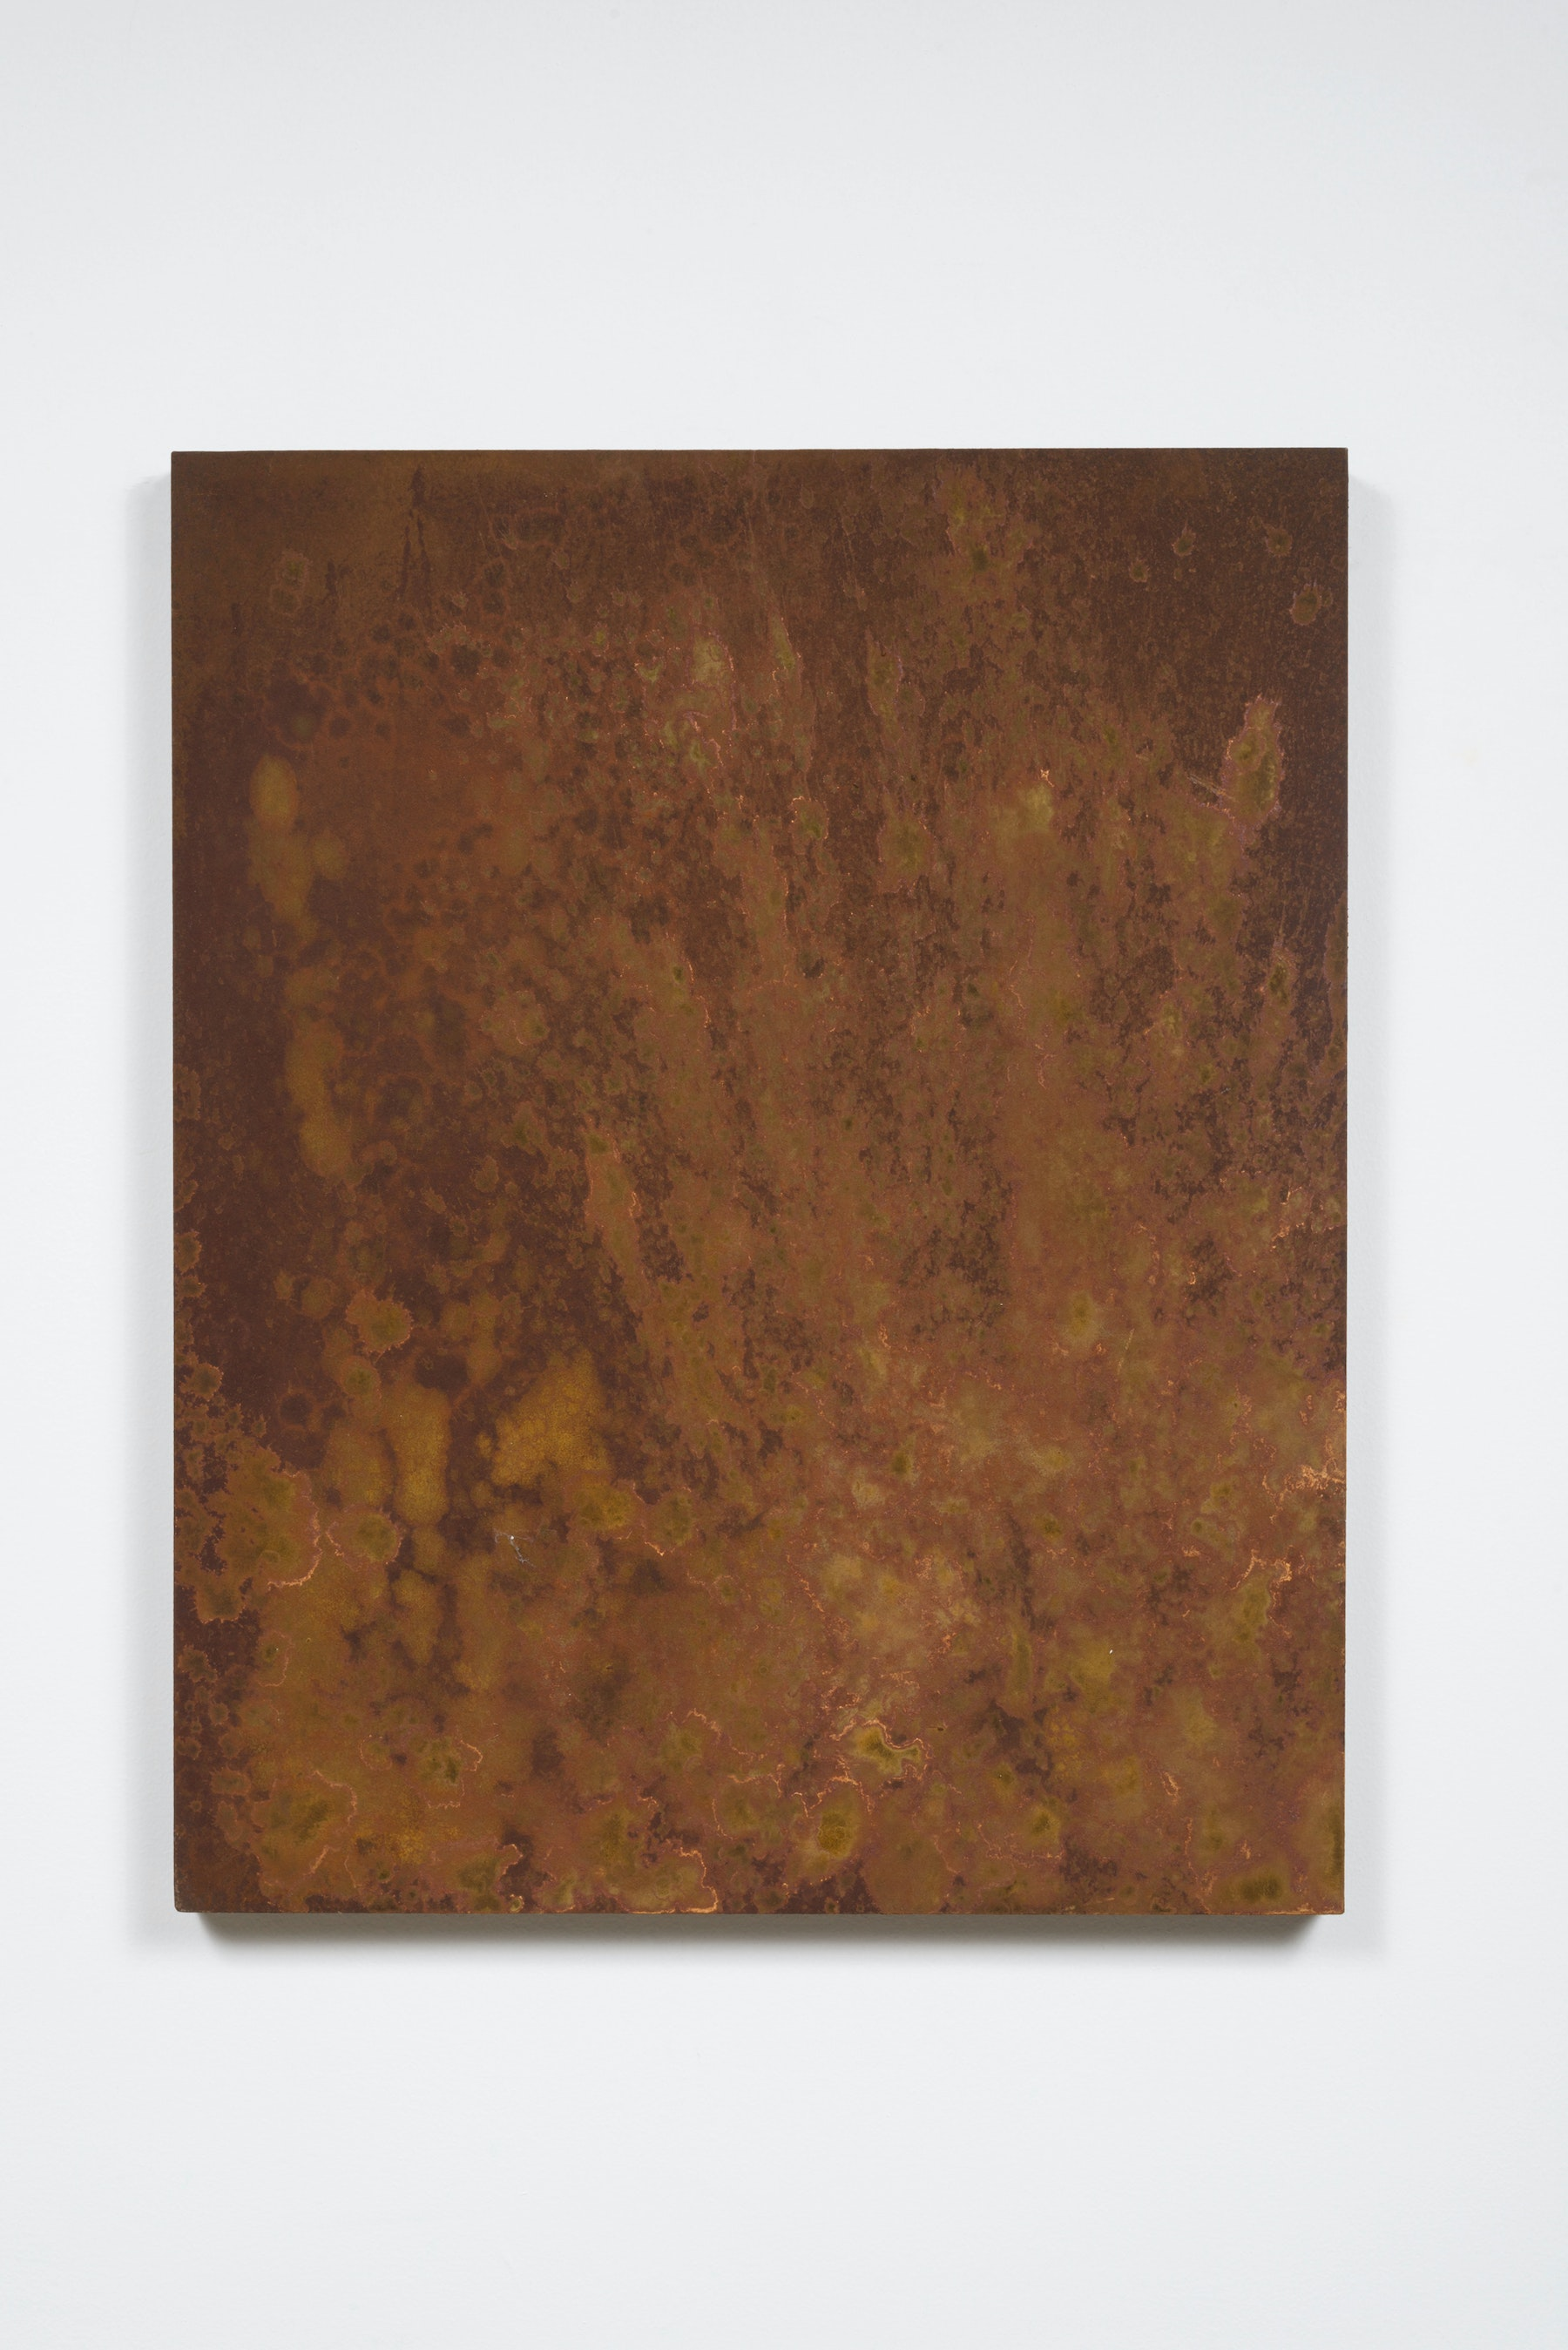 "Ruben Ochoa ""Ha! Just like my neighbor's car,"" 2015 - 2016 Rust on panel 30"" H x 24"" W (76.2 cm H x 60.96 cm W) Inventory #OCH327 Courtesy of the artist and Vielmetter Los Angeles Photo credit: Jeff McLane"